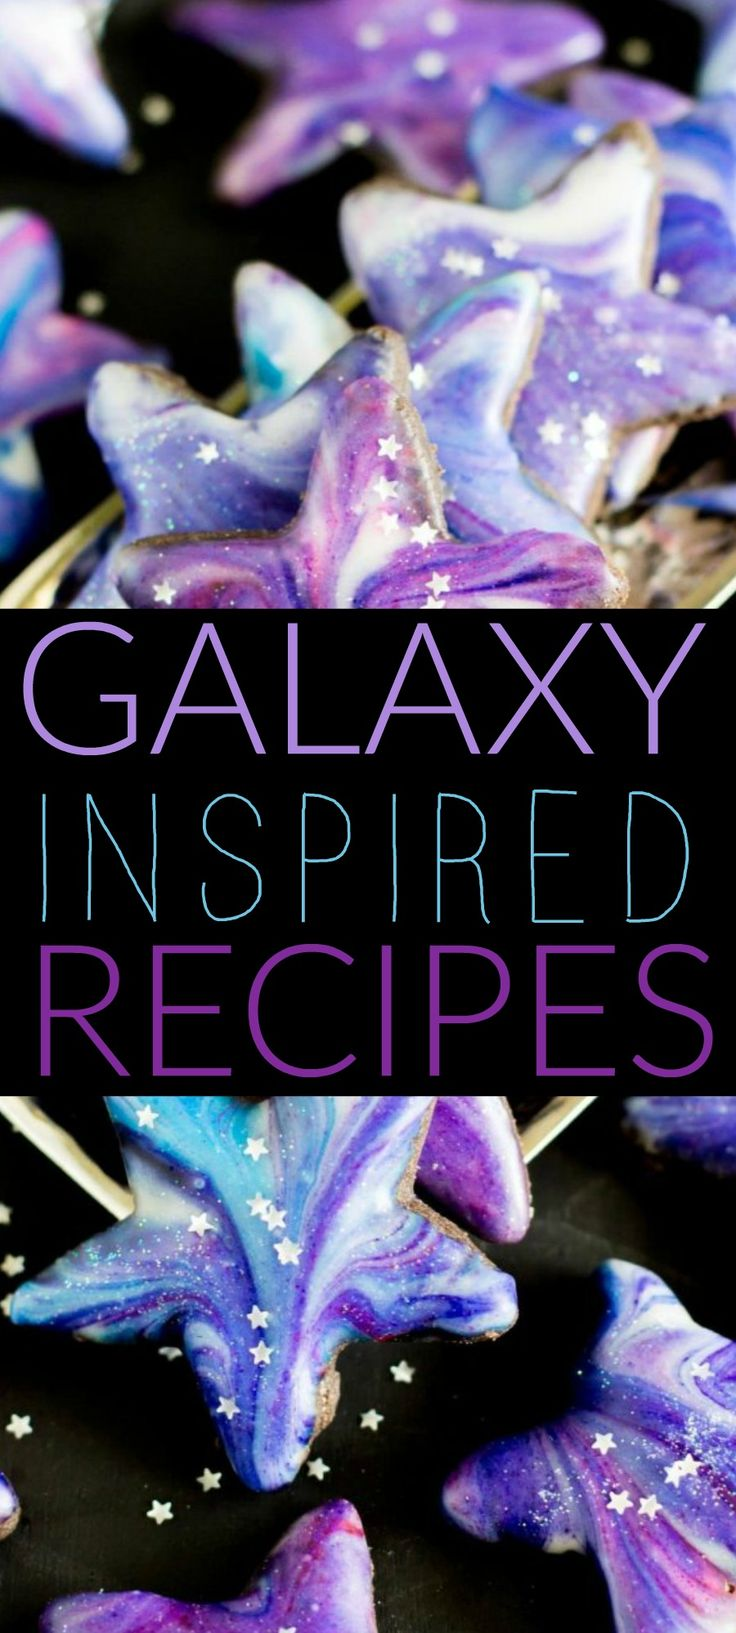 Hey guys, are you ready to see some great galactic recipes?! I know that everyone loves galaxy inspired recipes, and this roundup is full of out of this world incredible food. You will love all theseGalaxy Inspired Recipies that are perfect for a space themed party or get together. It's easier than it looks to pull off these snacks, it just takes a little bit of practice.